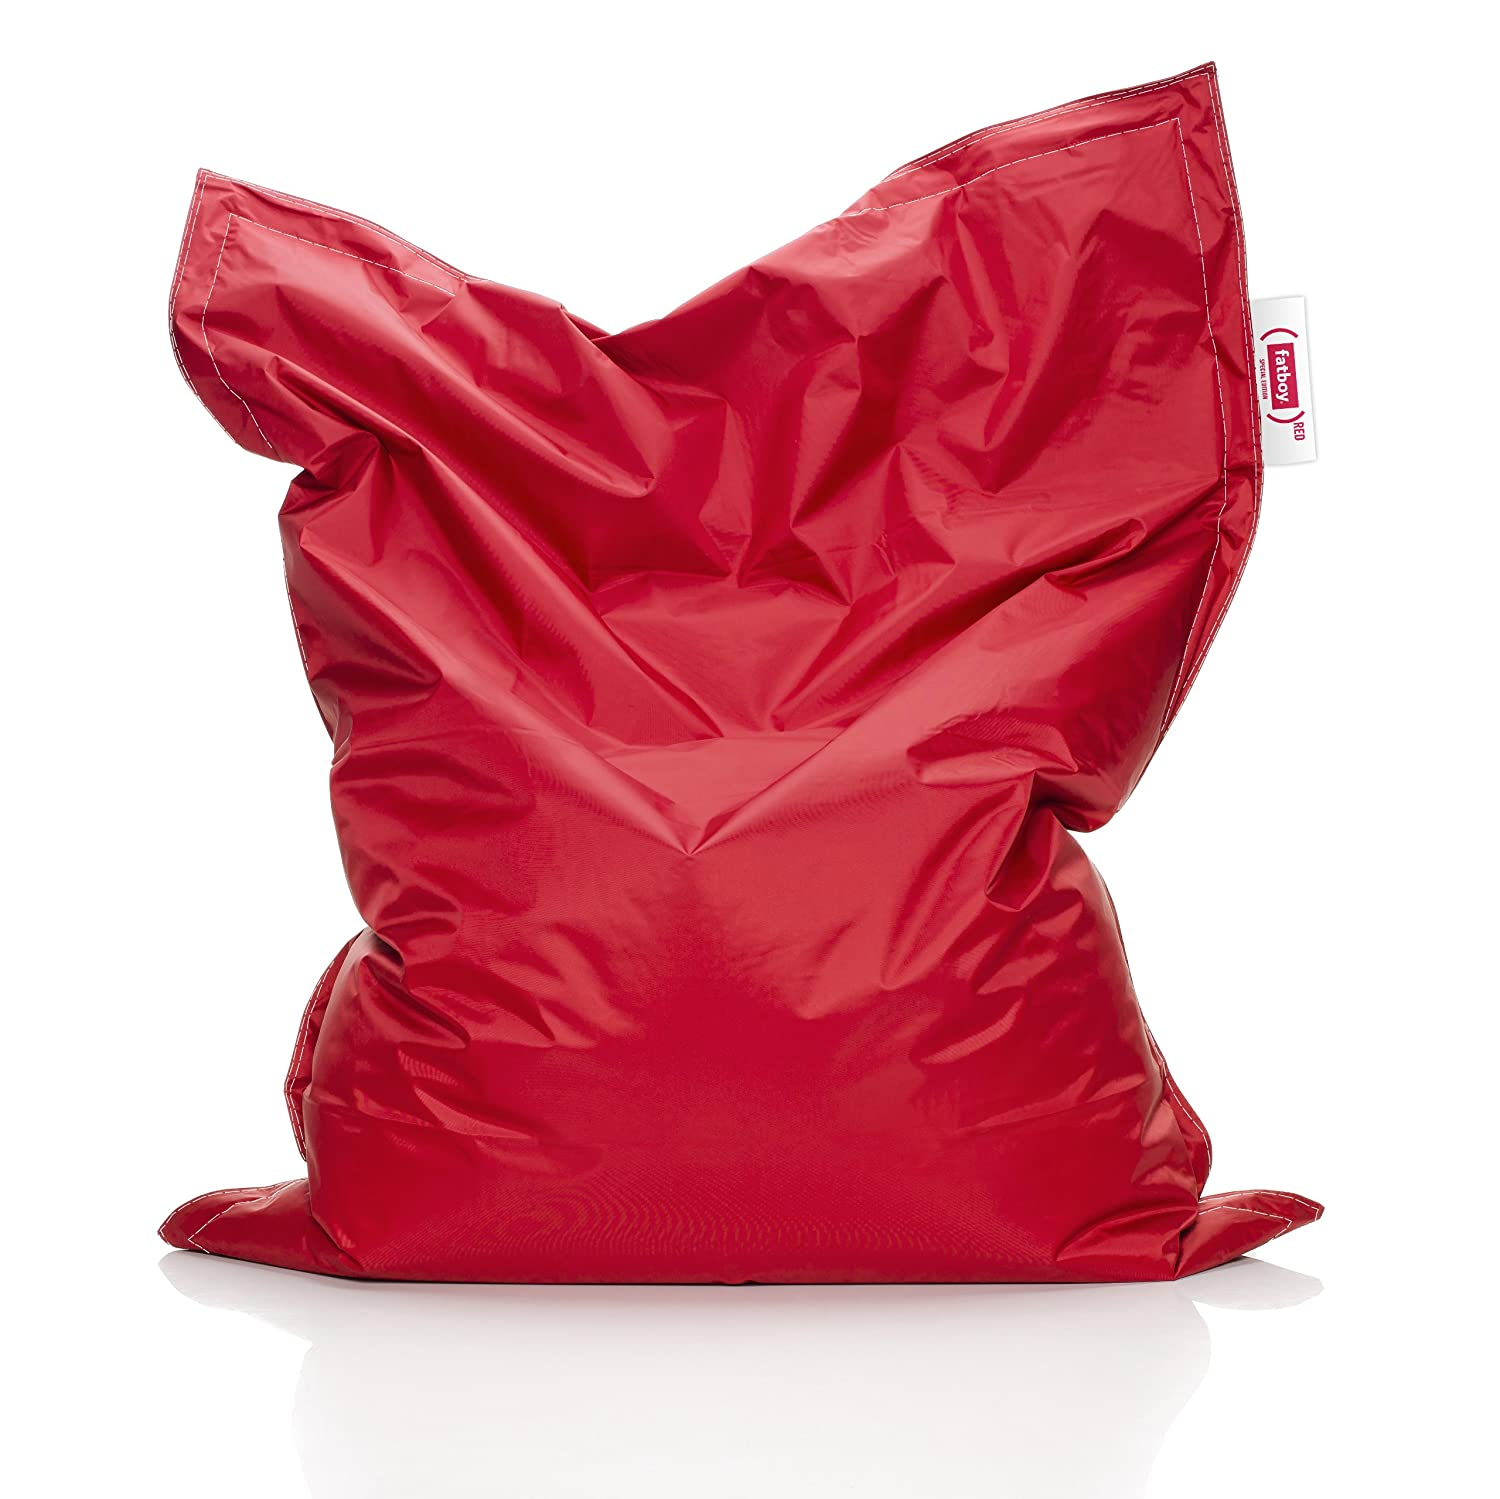 - Amazon.com: Fatboy Special Edition Original Bean Bag: Kitchen & Dining